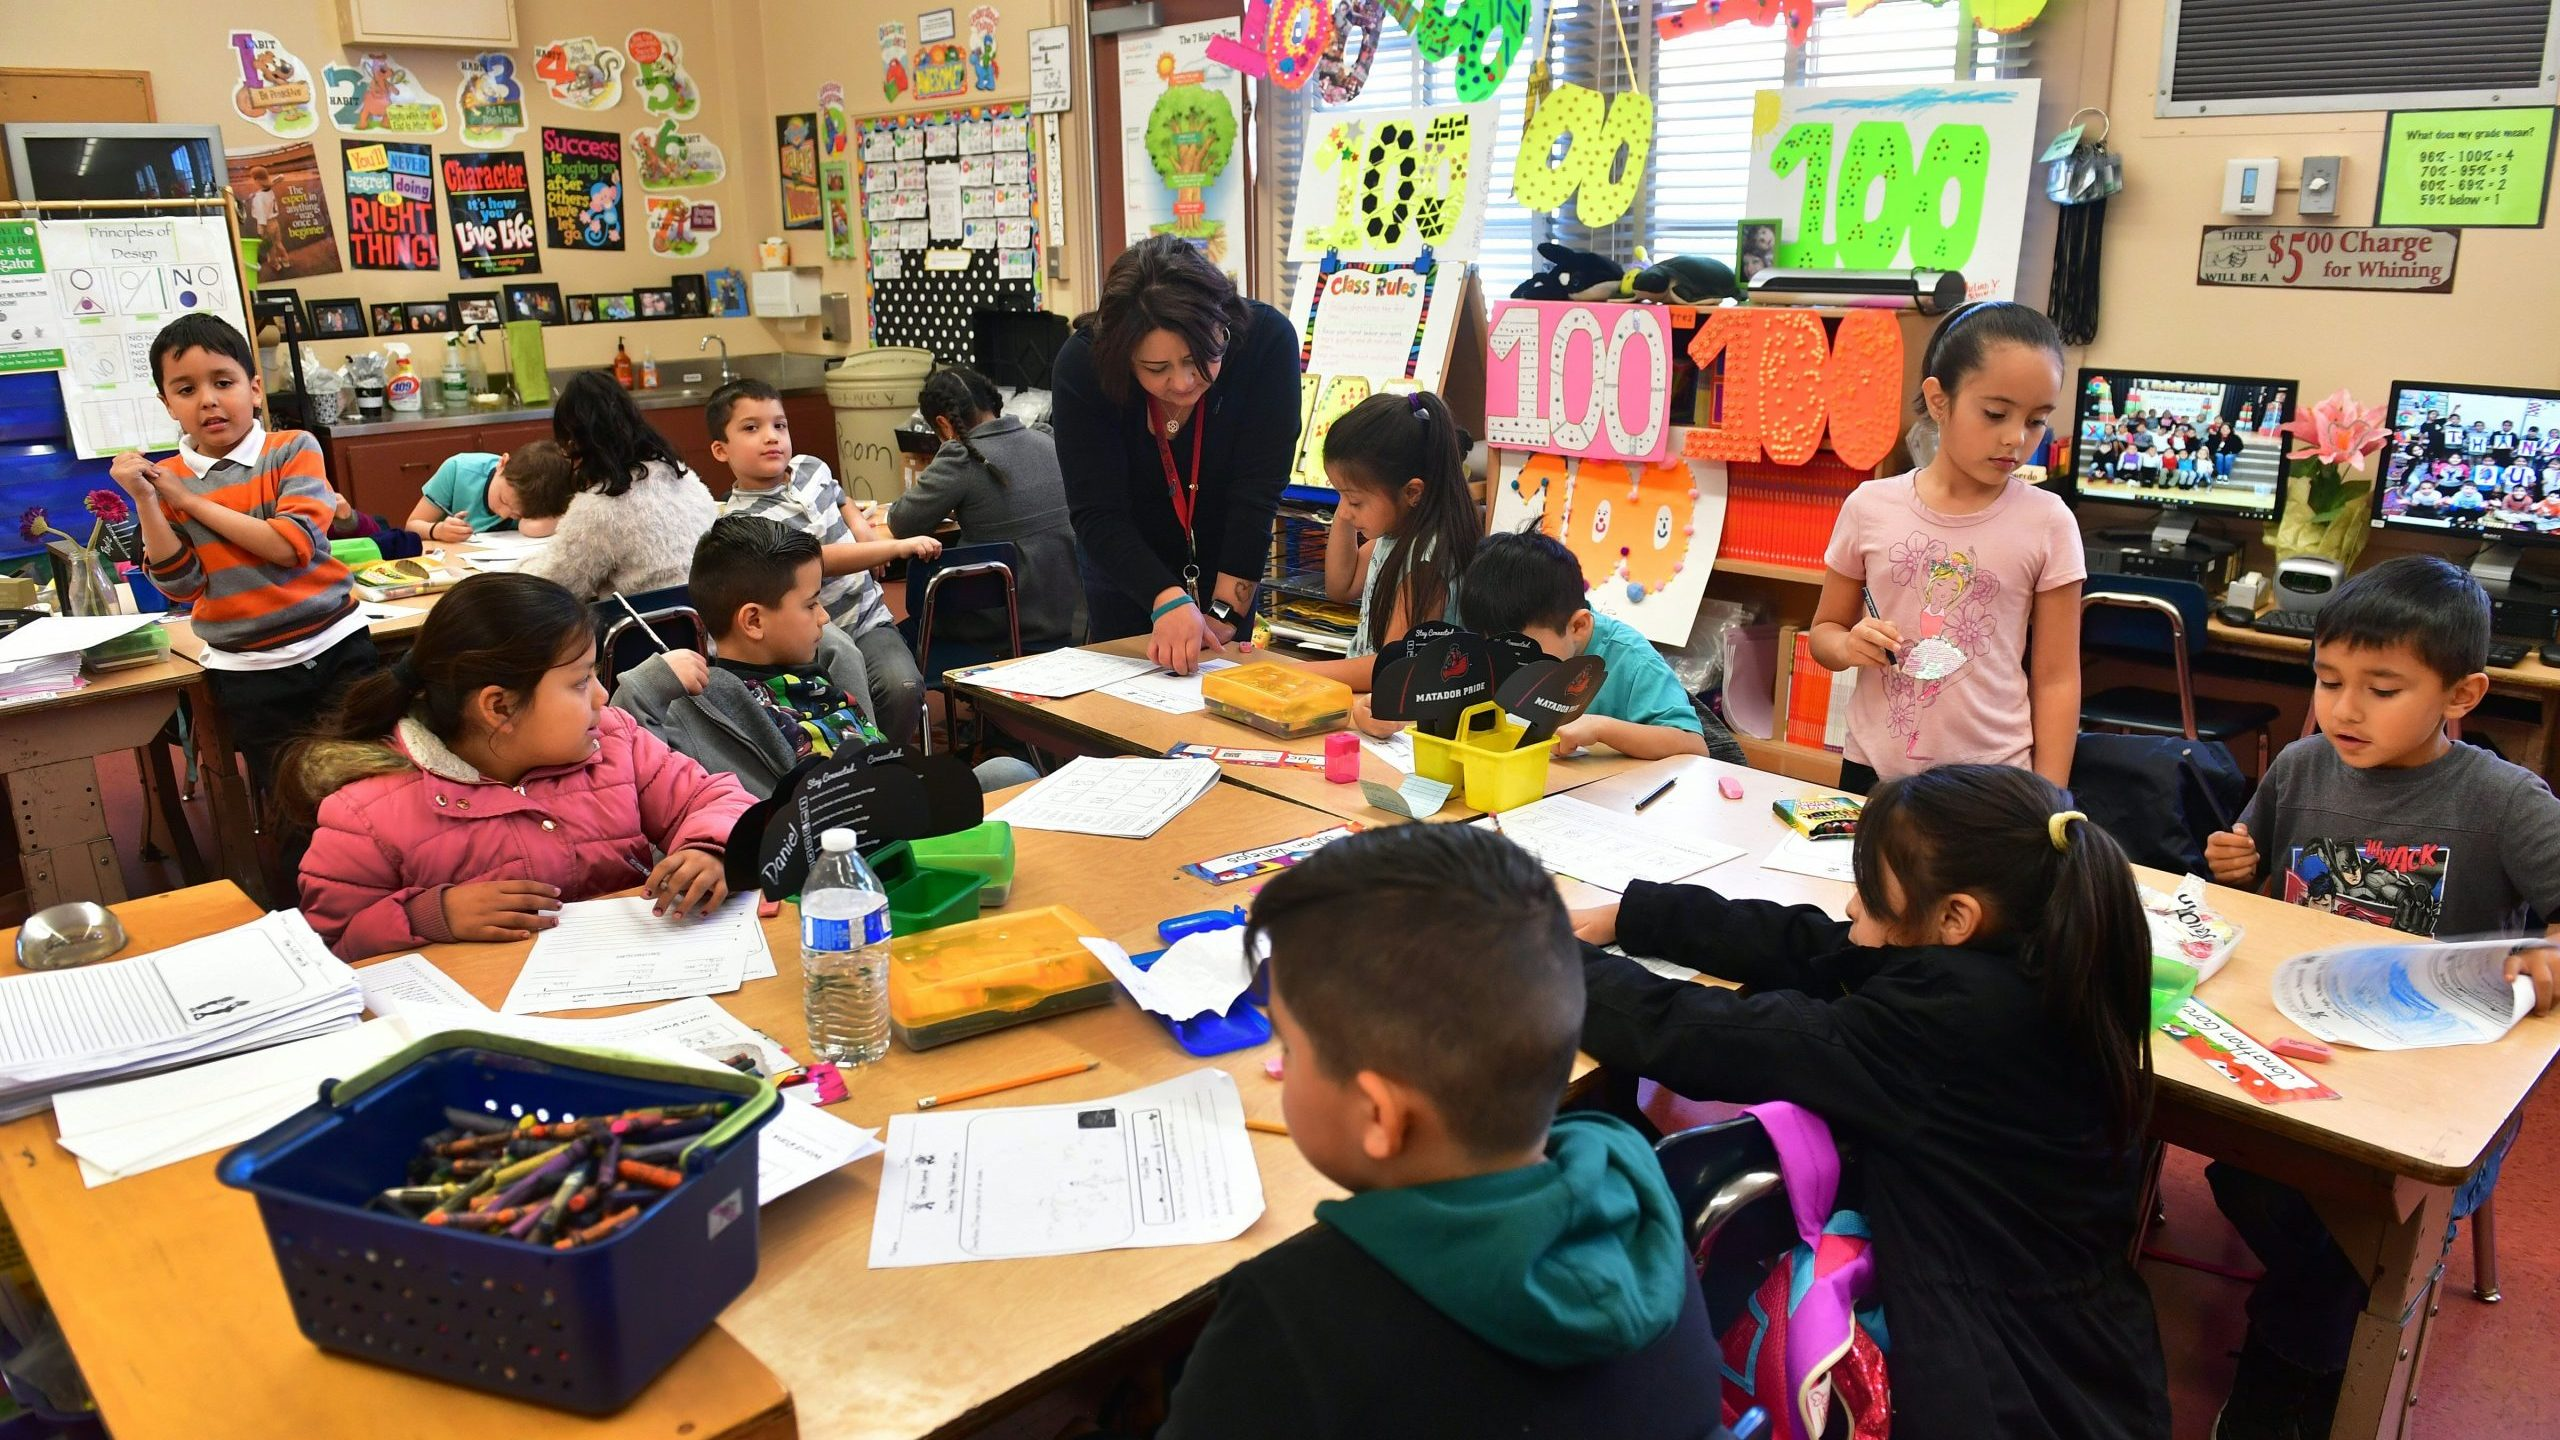 Telfair Elementary School first grade teacher Ms. Gutierrez works with her students on Feb. 8, 2019 in Pacoima. (Credit: FREDERIC J. BROWN/AFP via Getty Images)